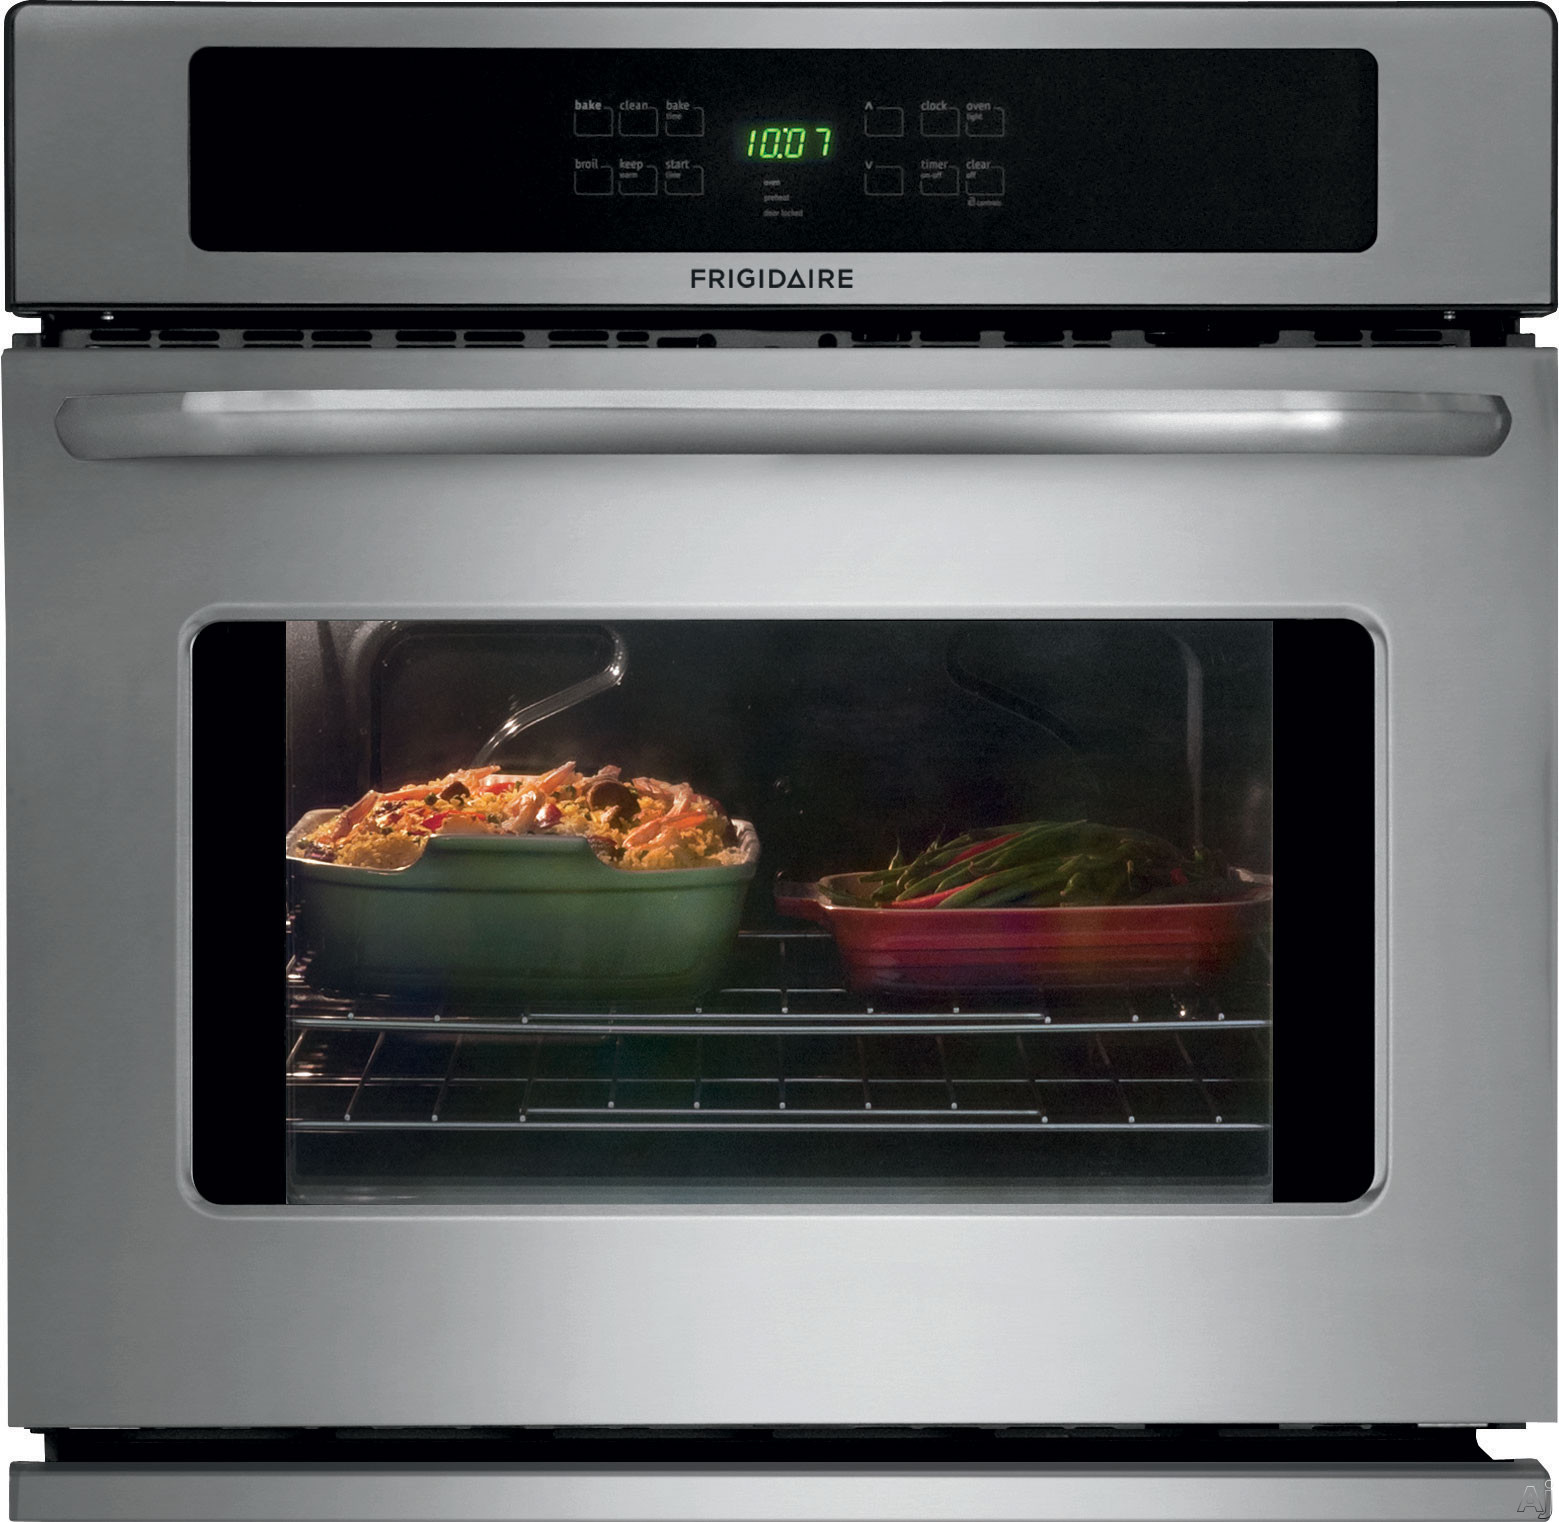 Picture of Frigidaire FFEW3025P 30 Inch Single Electric Wall Oven with 46 cu ft Self-Clean Oven Delay Clean Option Timed Cook Option Keep Warm Setting and Auto Oven Shut-Off